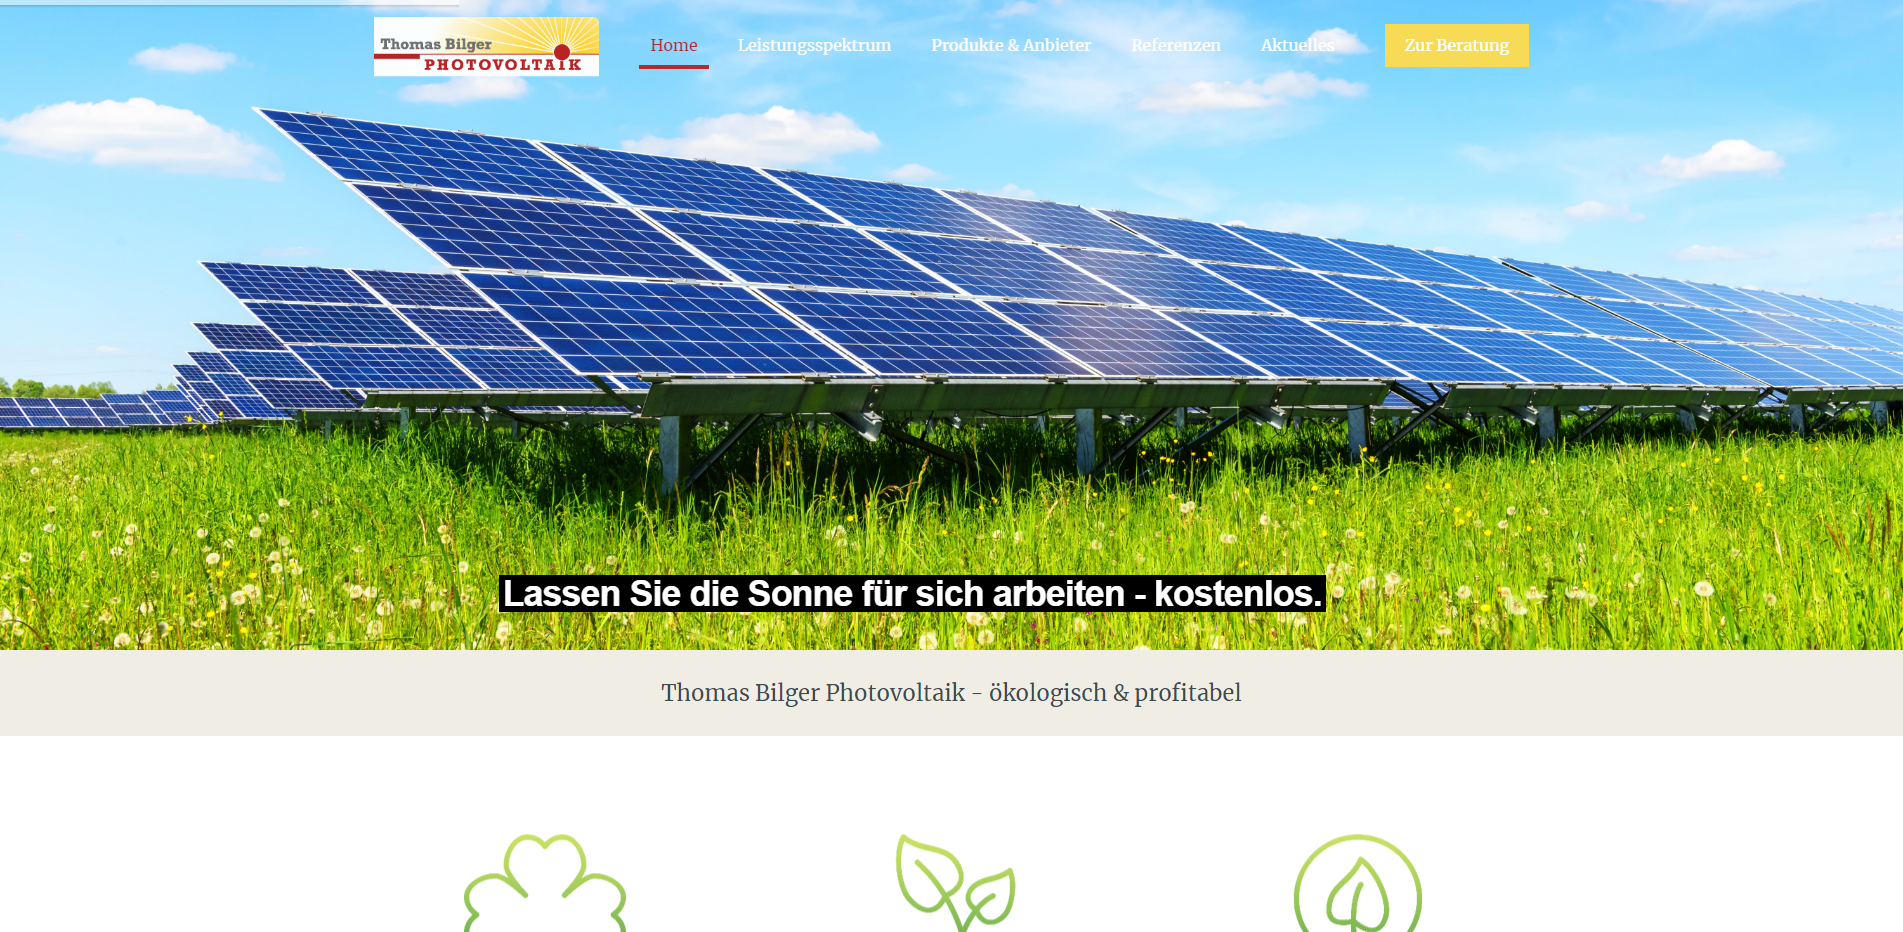 Home Photovoltaik Thomas Bilger